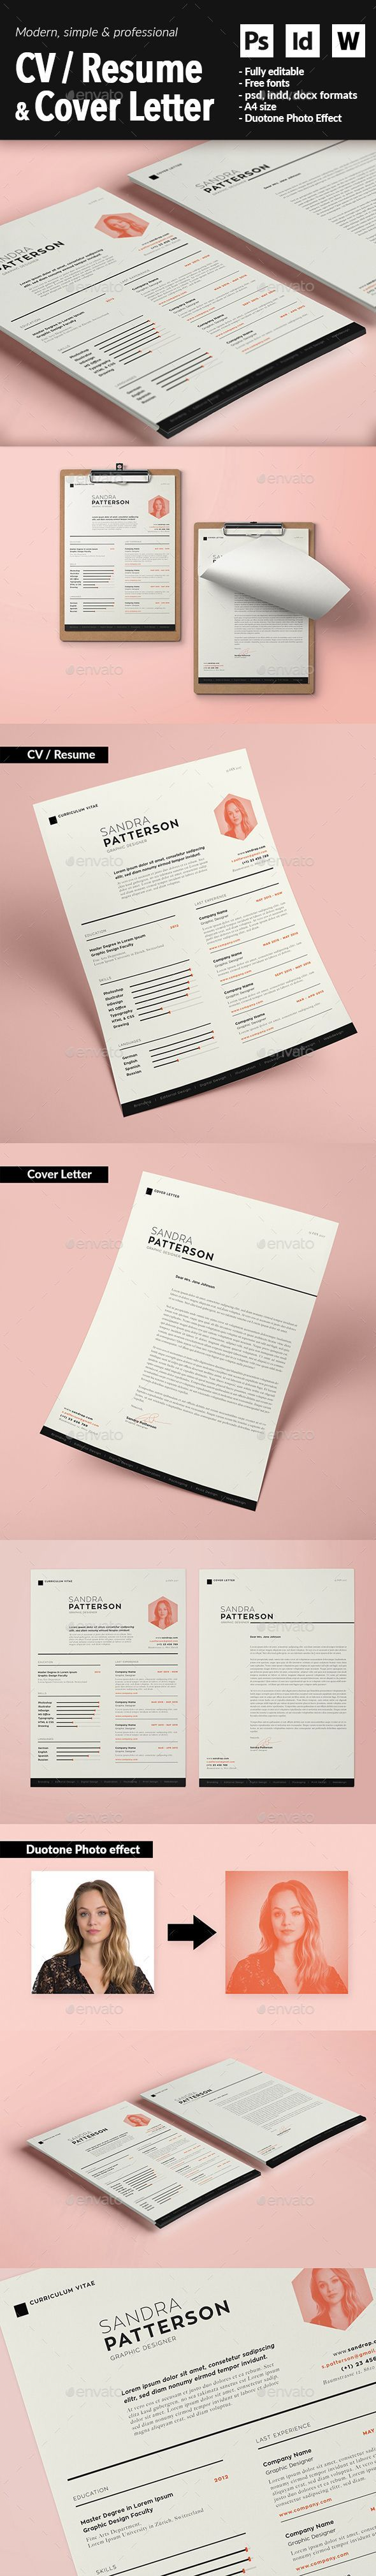 CV / Resume & Cover Letter Template PSD, InDesign INDD, MS Word